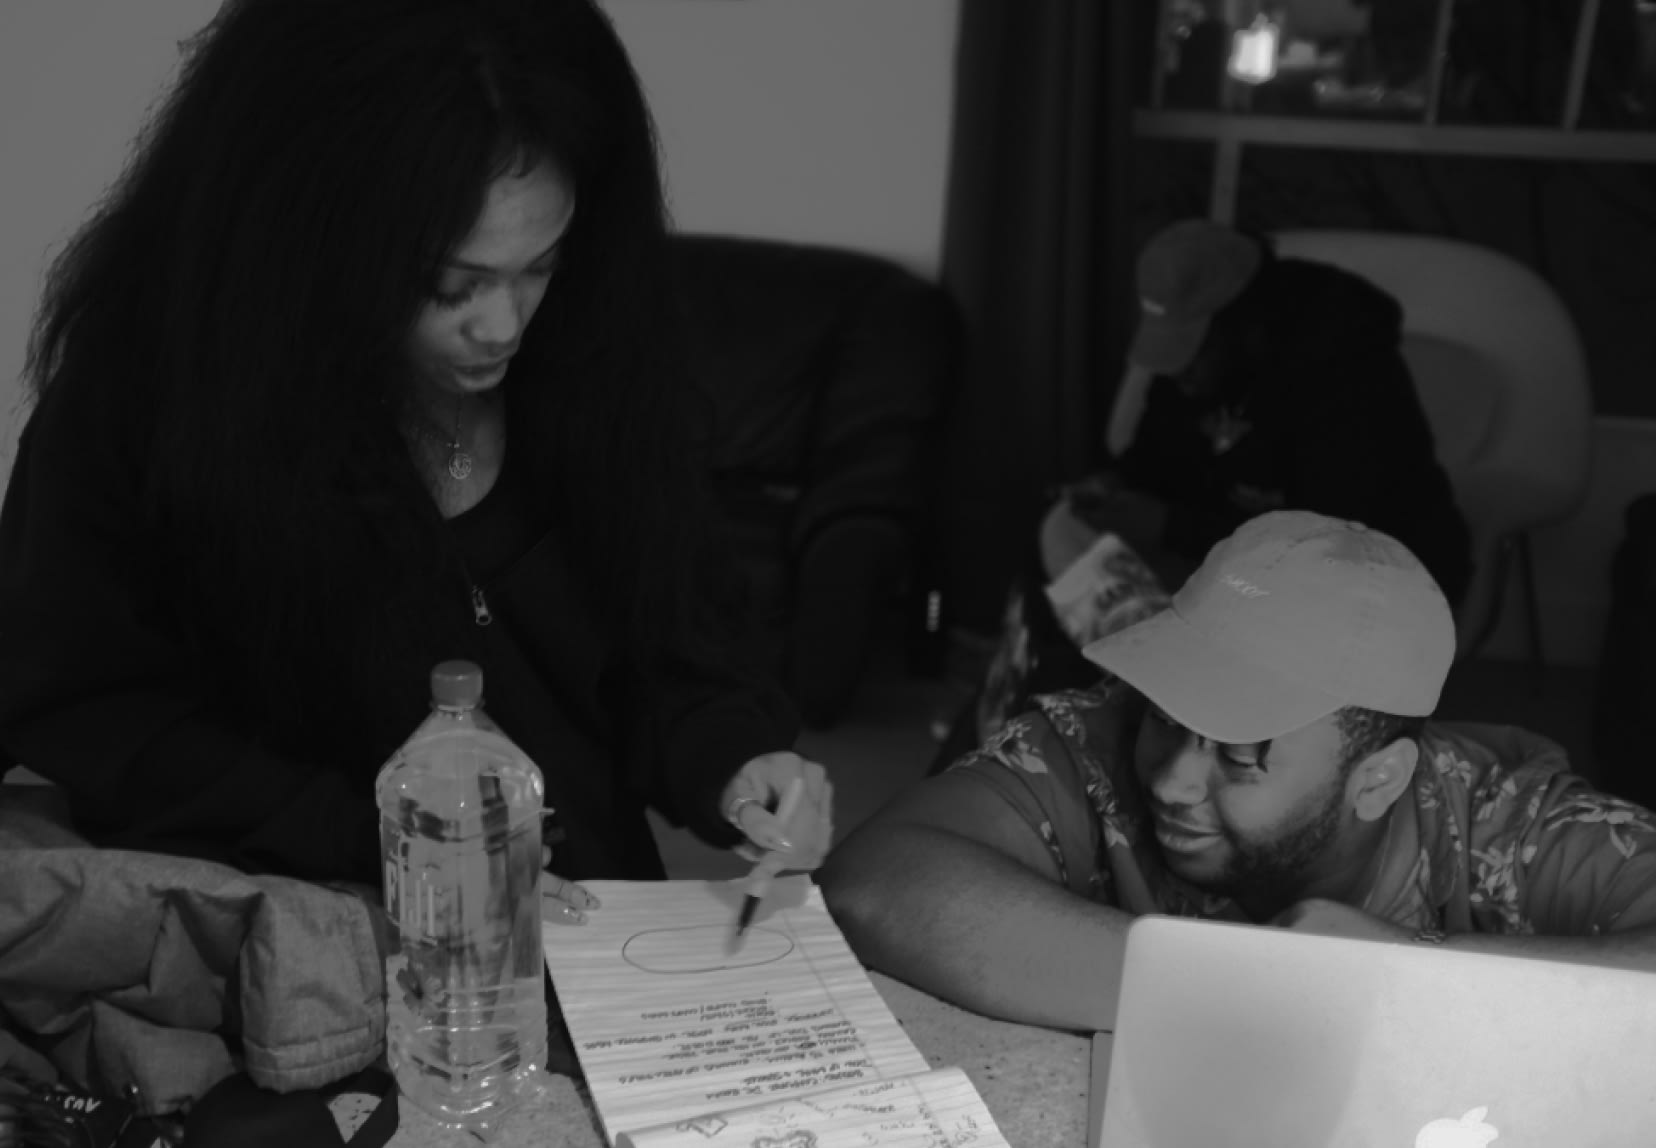 SZA working on a design on paper.